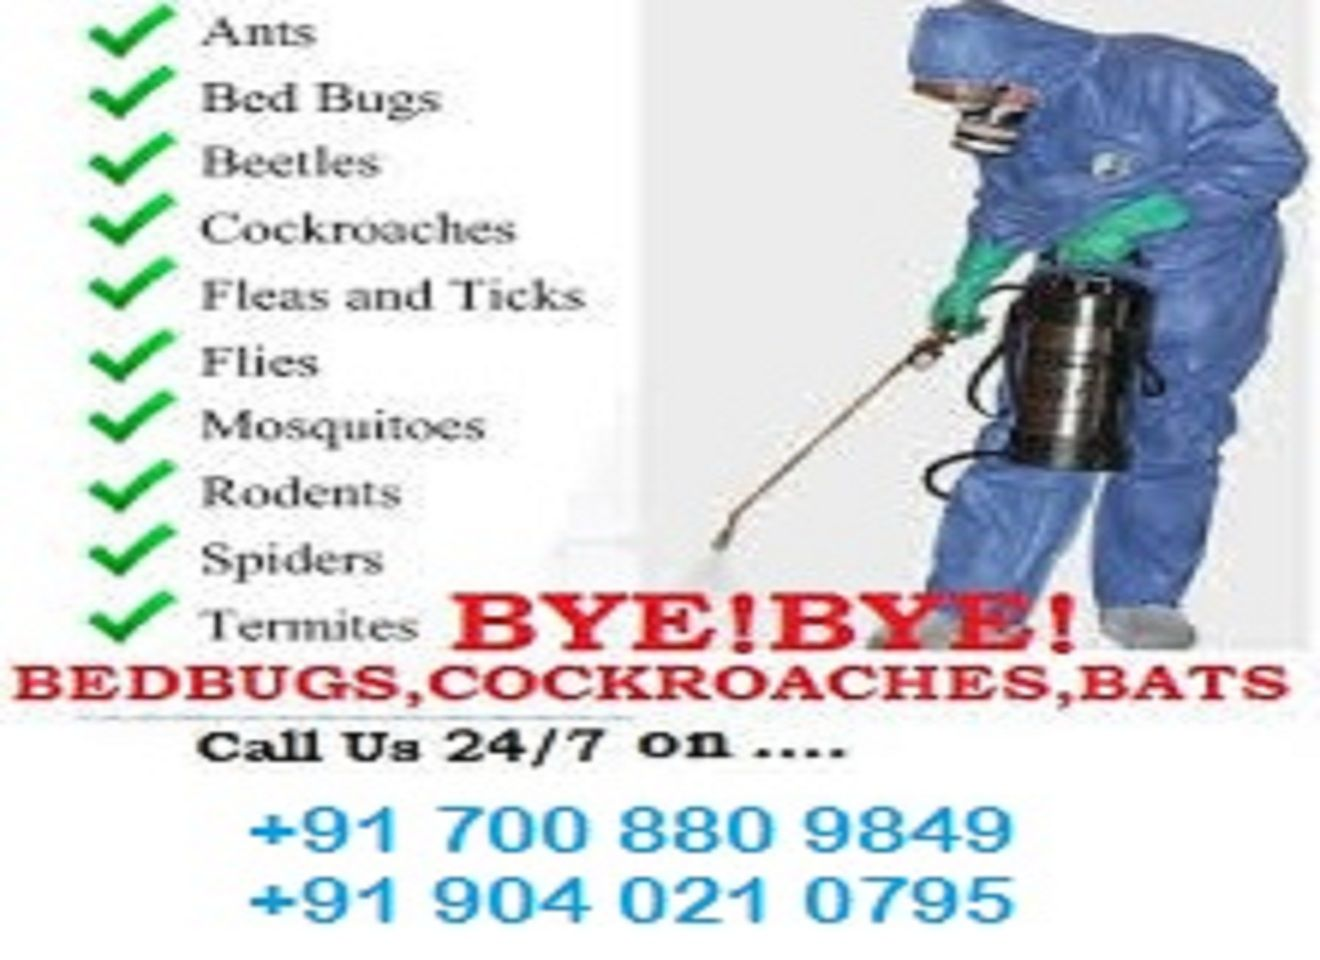 Fumigation Services Fumigation services, Bed bugs